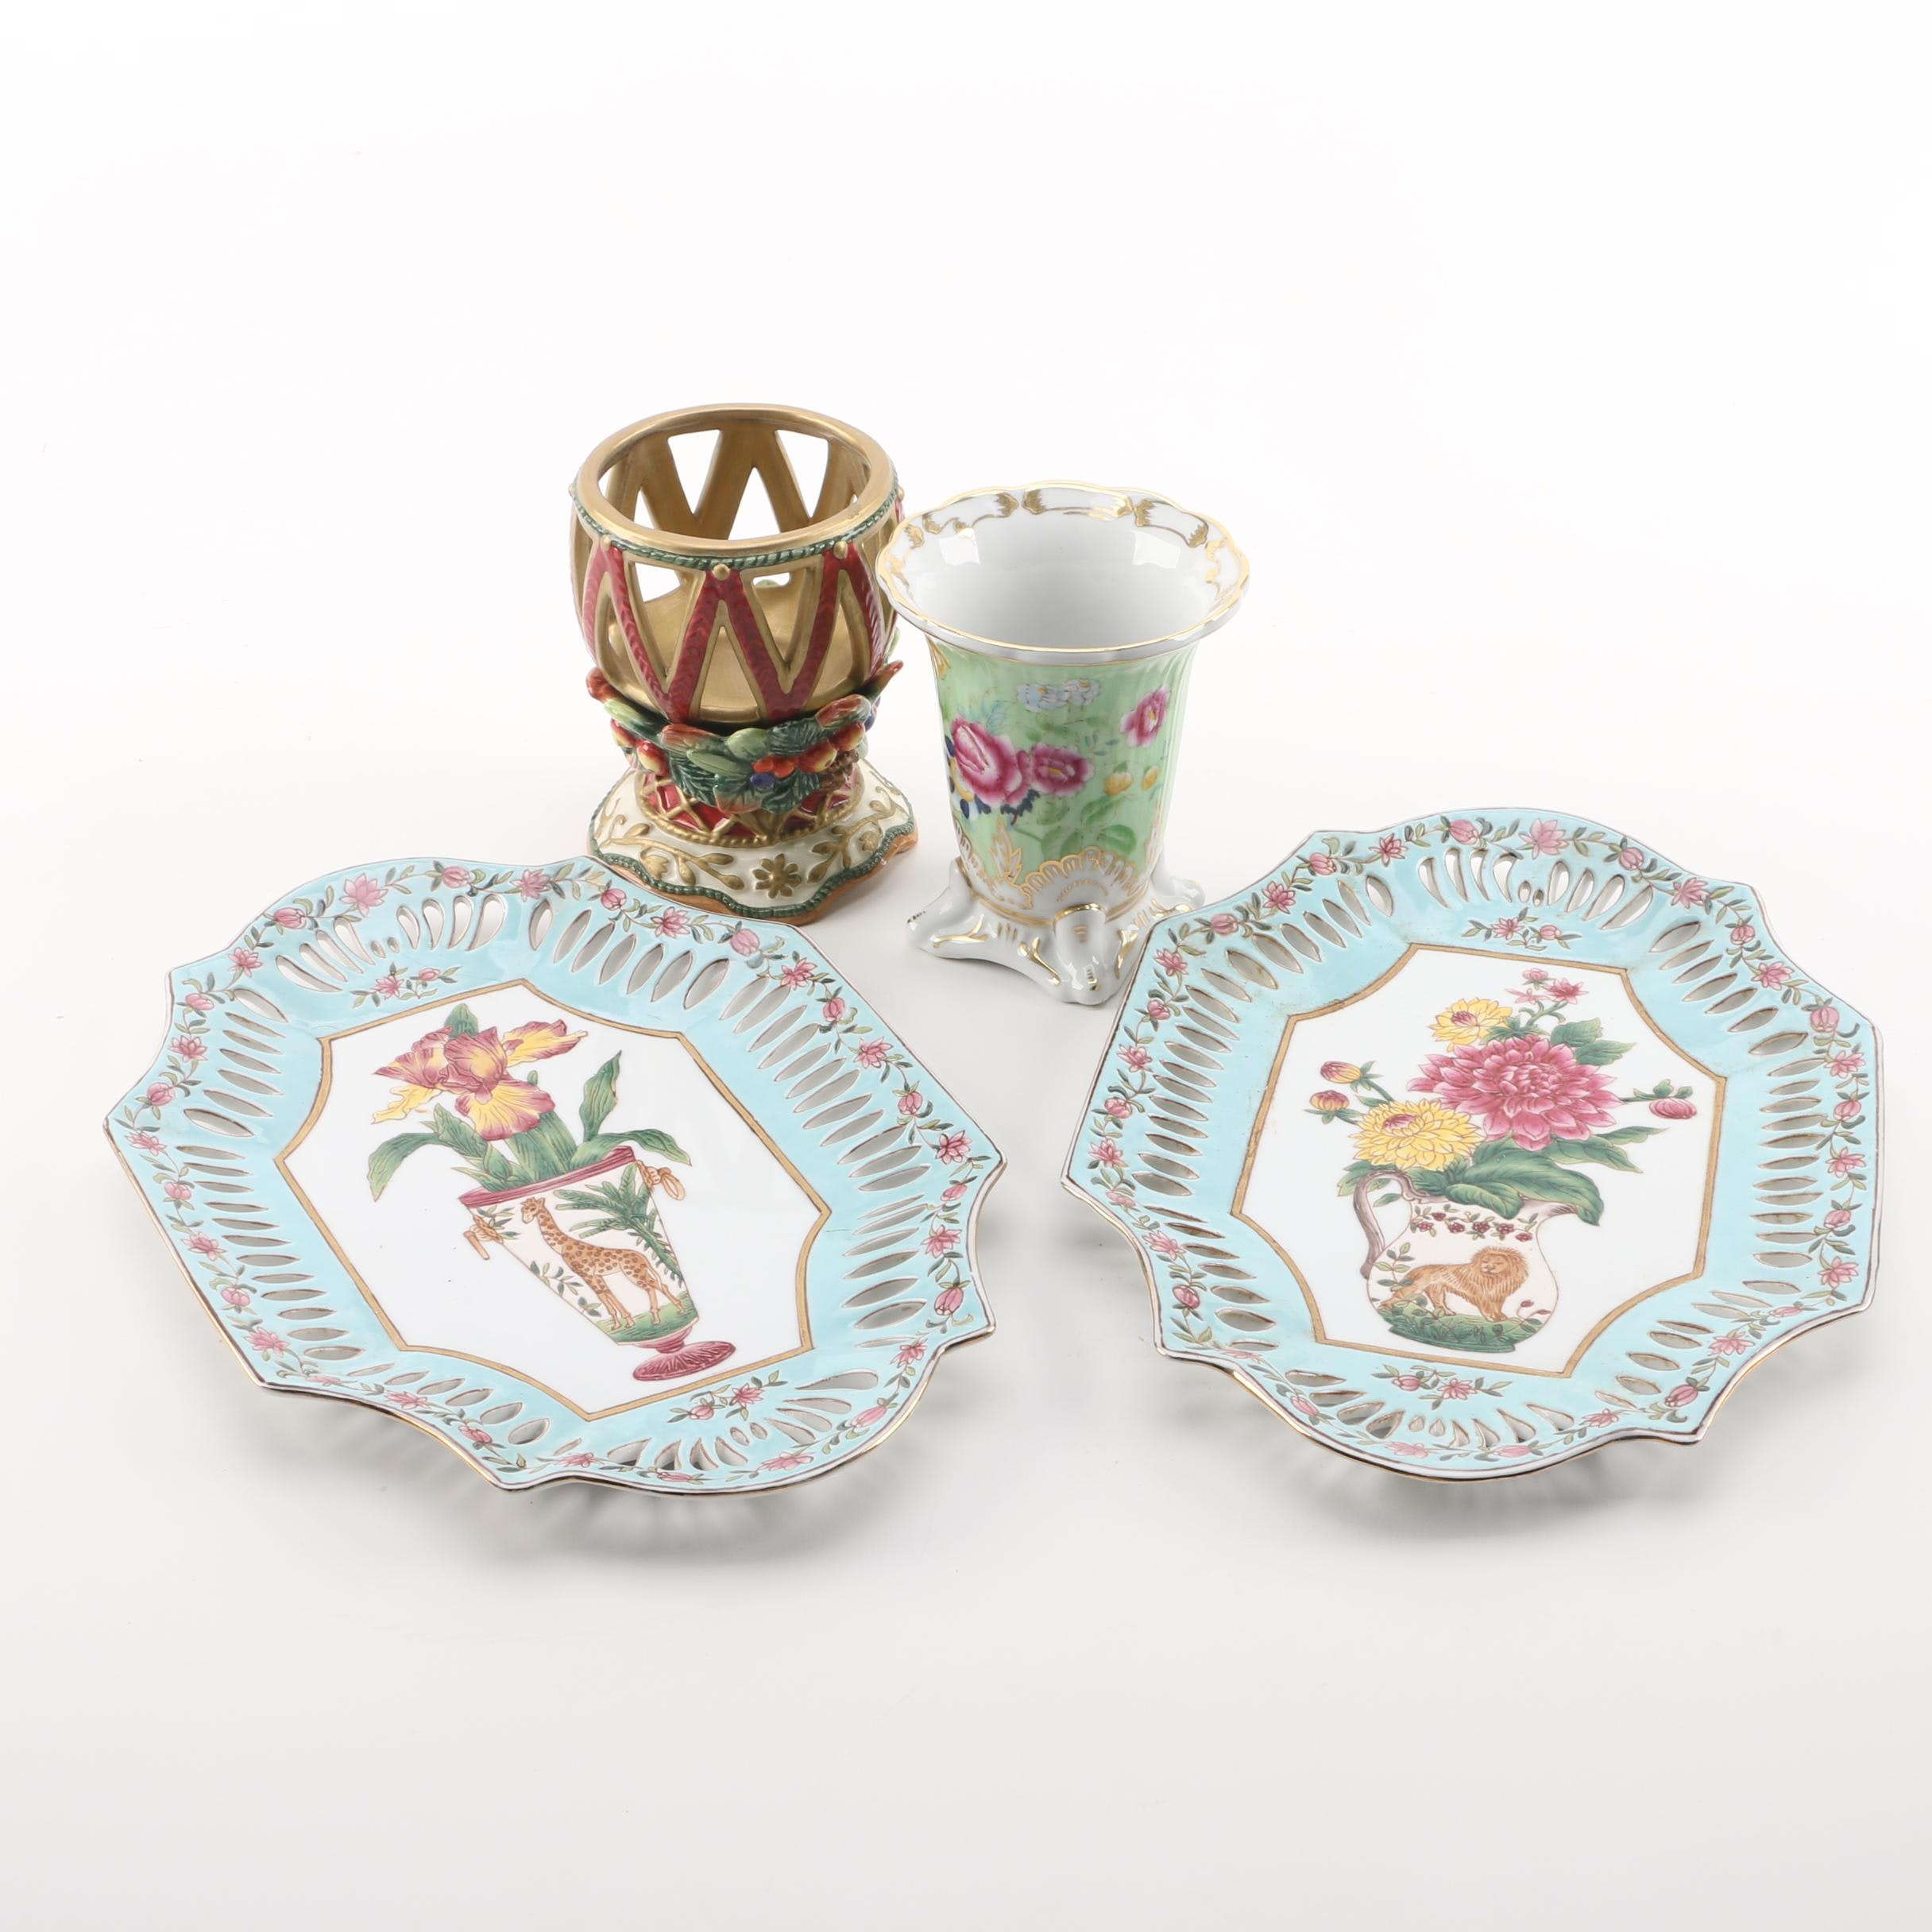 Decorative Ceramic Vases and Trays Including Fitz and Floyd